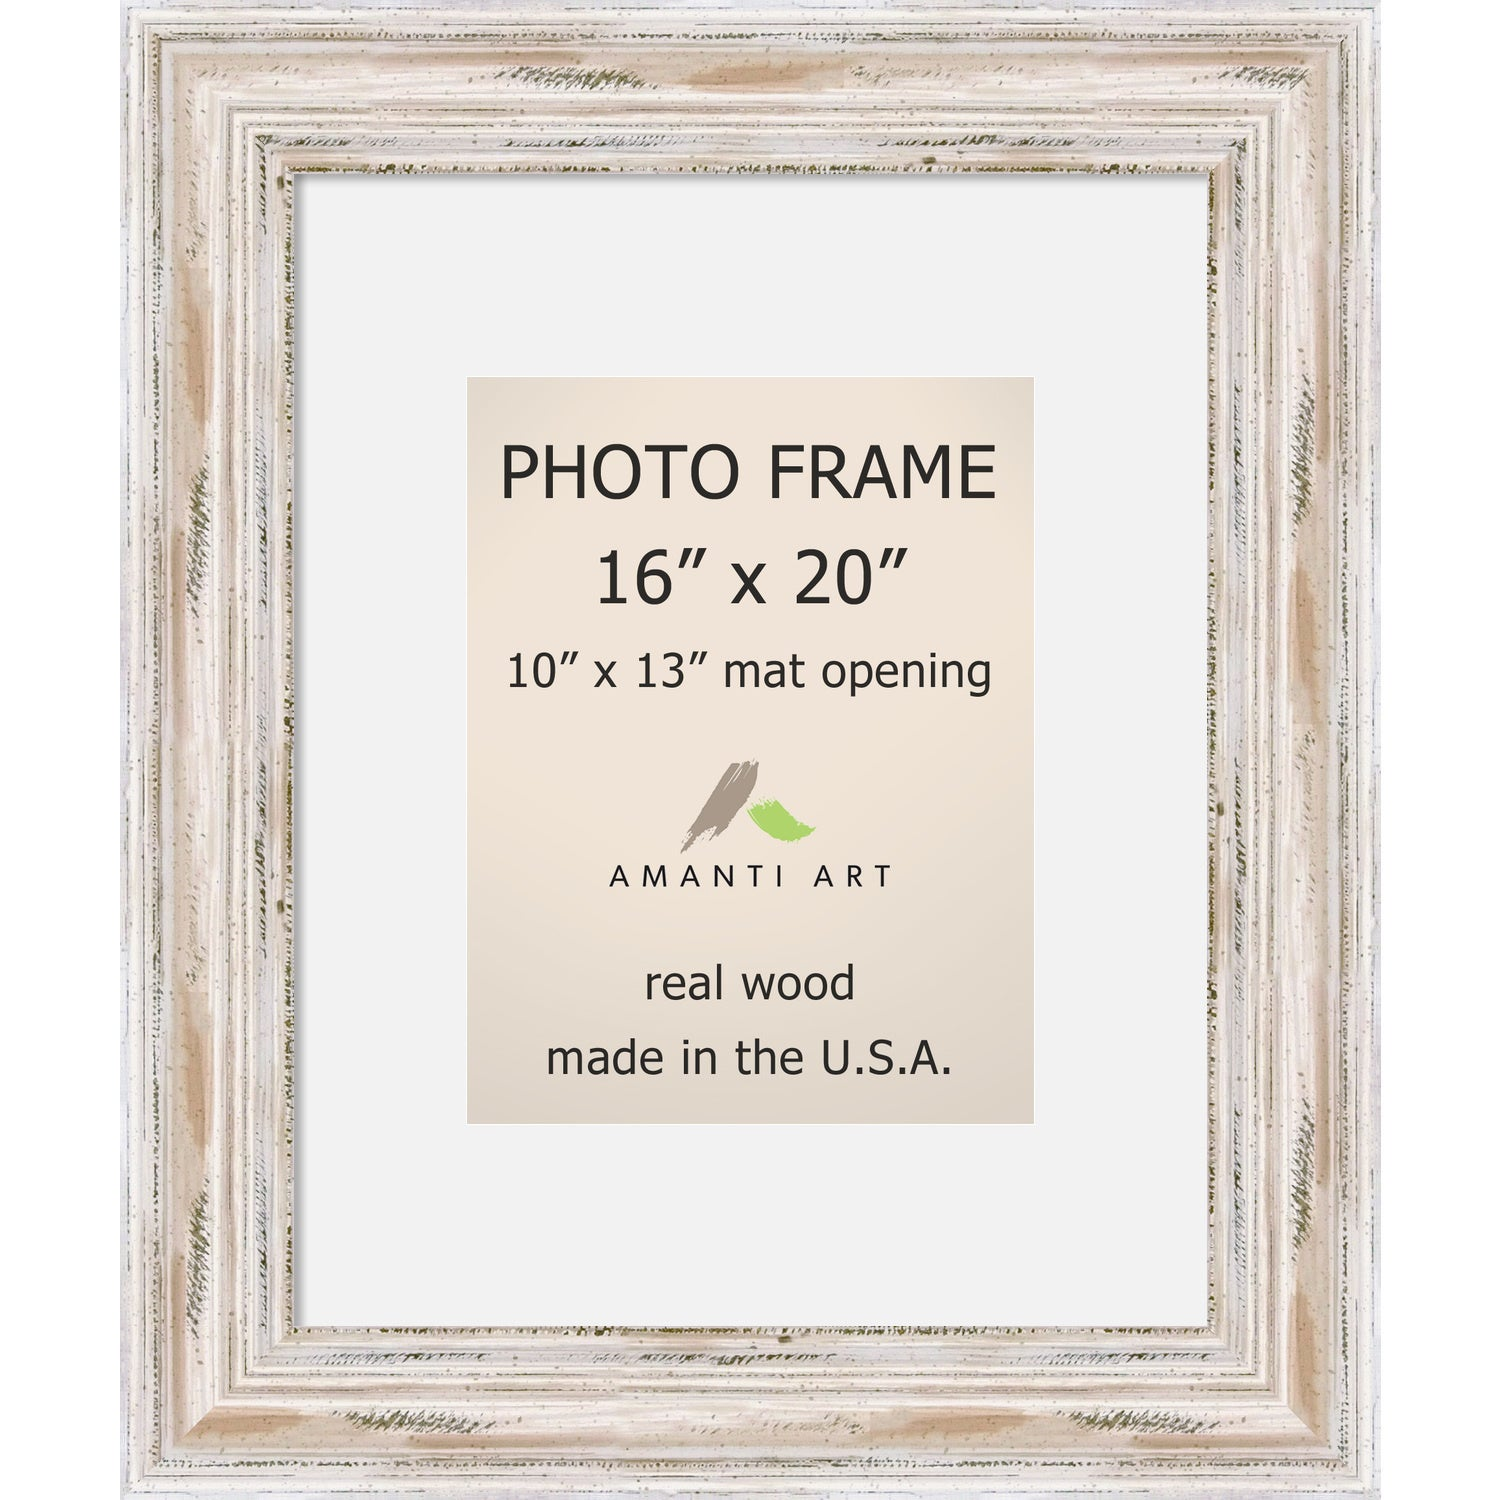 Alexandria whitewash photo frame 16x20 matted to 10x13 21 x 25 alexandria whitewash photo frame 16x20 matted to 10x13 21 x 25 inch free shipping today overstock 17221637 jeuxipadfo Gallery